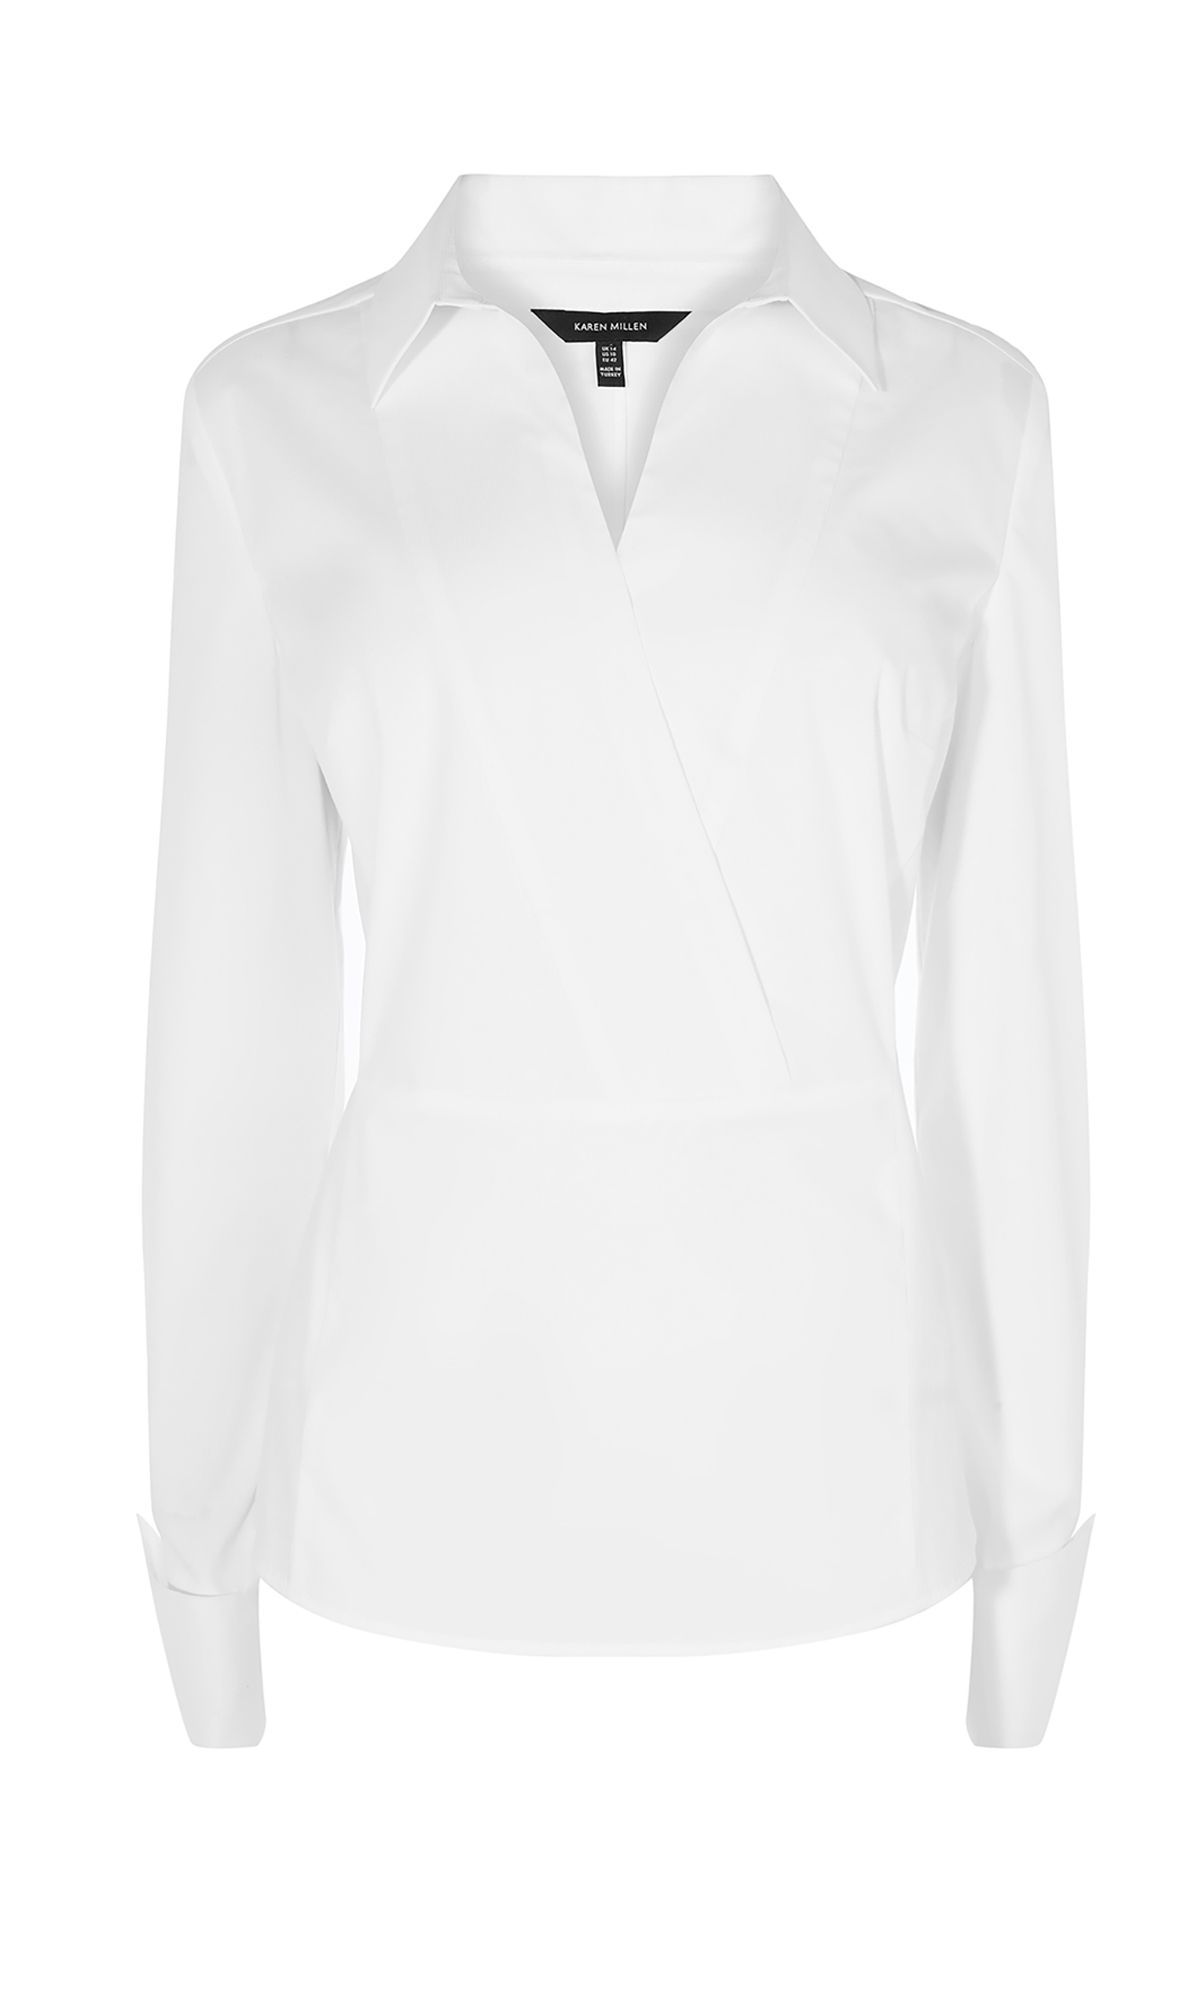 Karen Millen Wrap Cotton Shirt, White